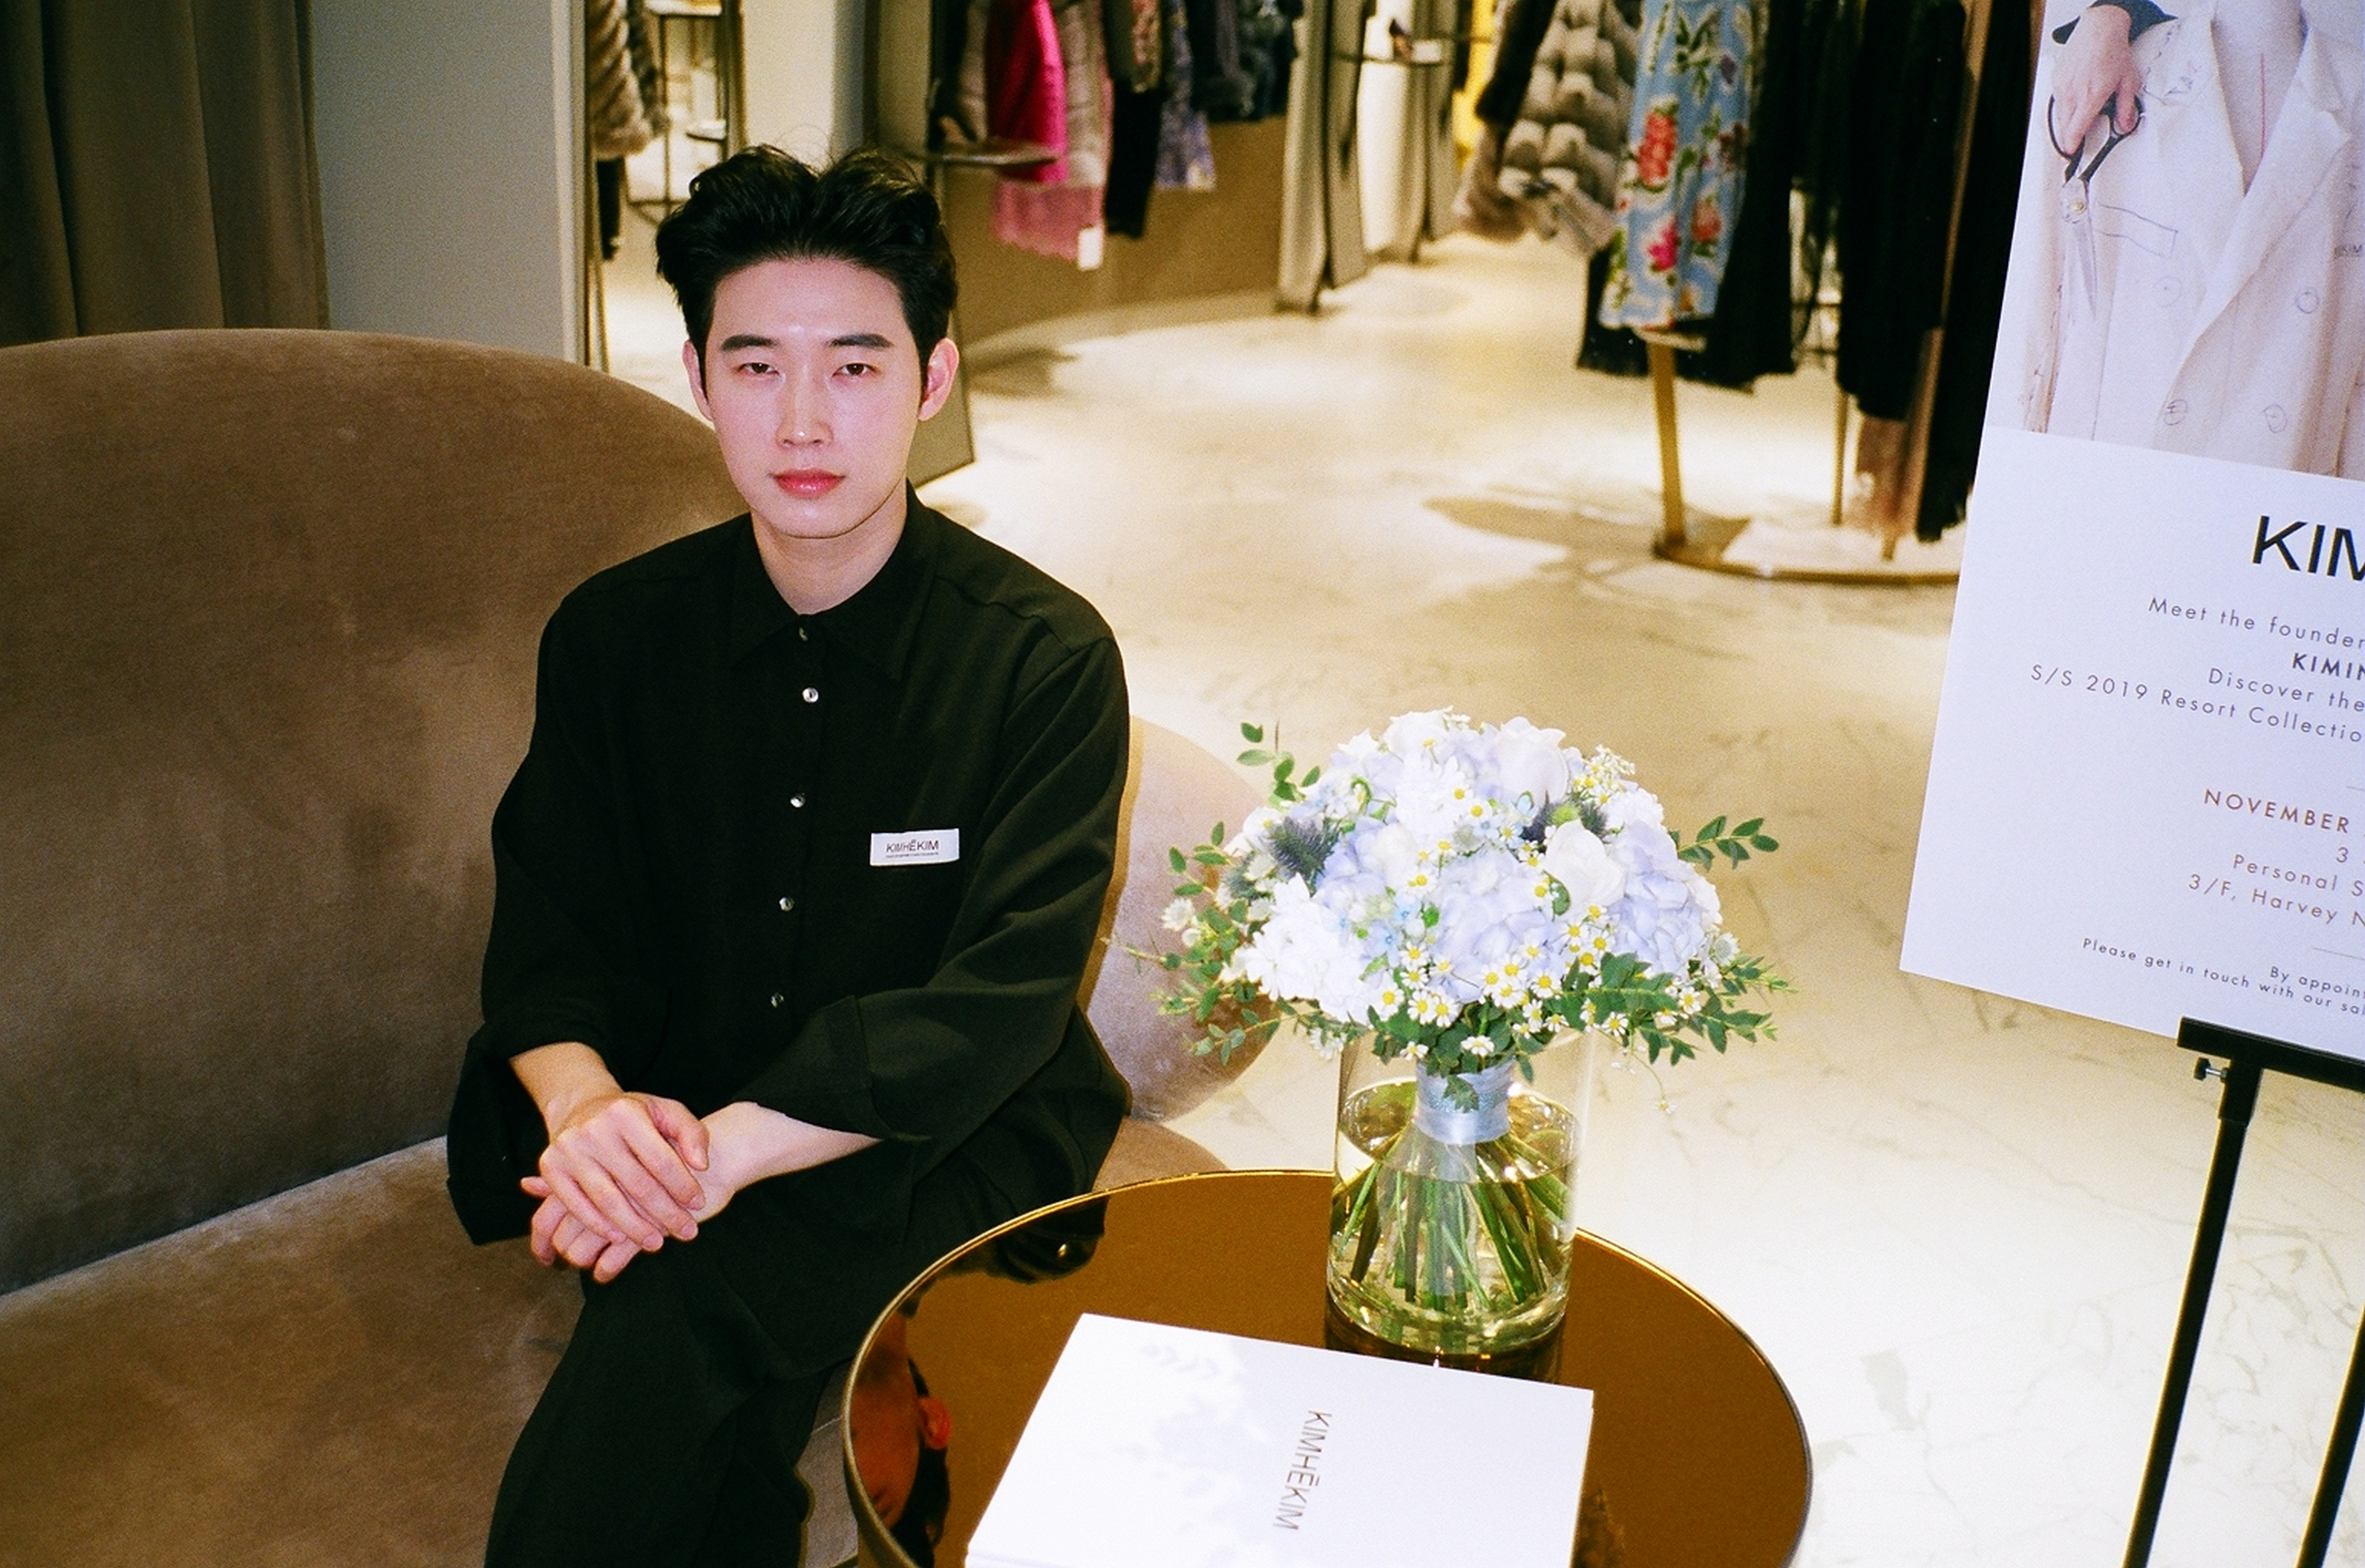 Kiminte Kimhekim visiting Harvey Nichols with his new SS19 collection